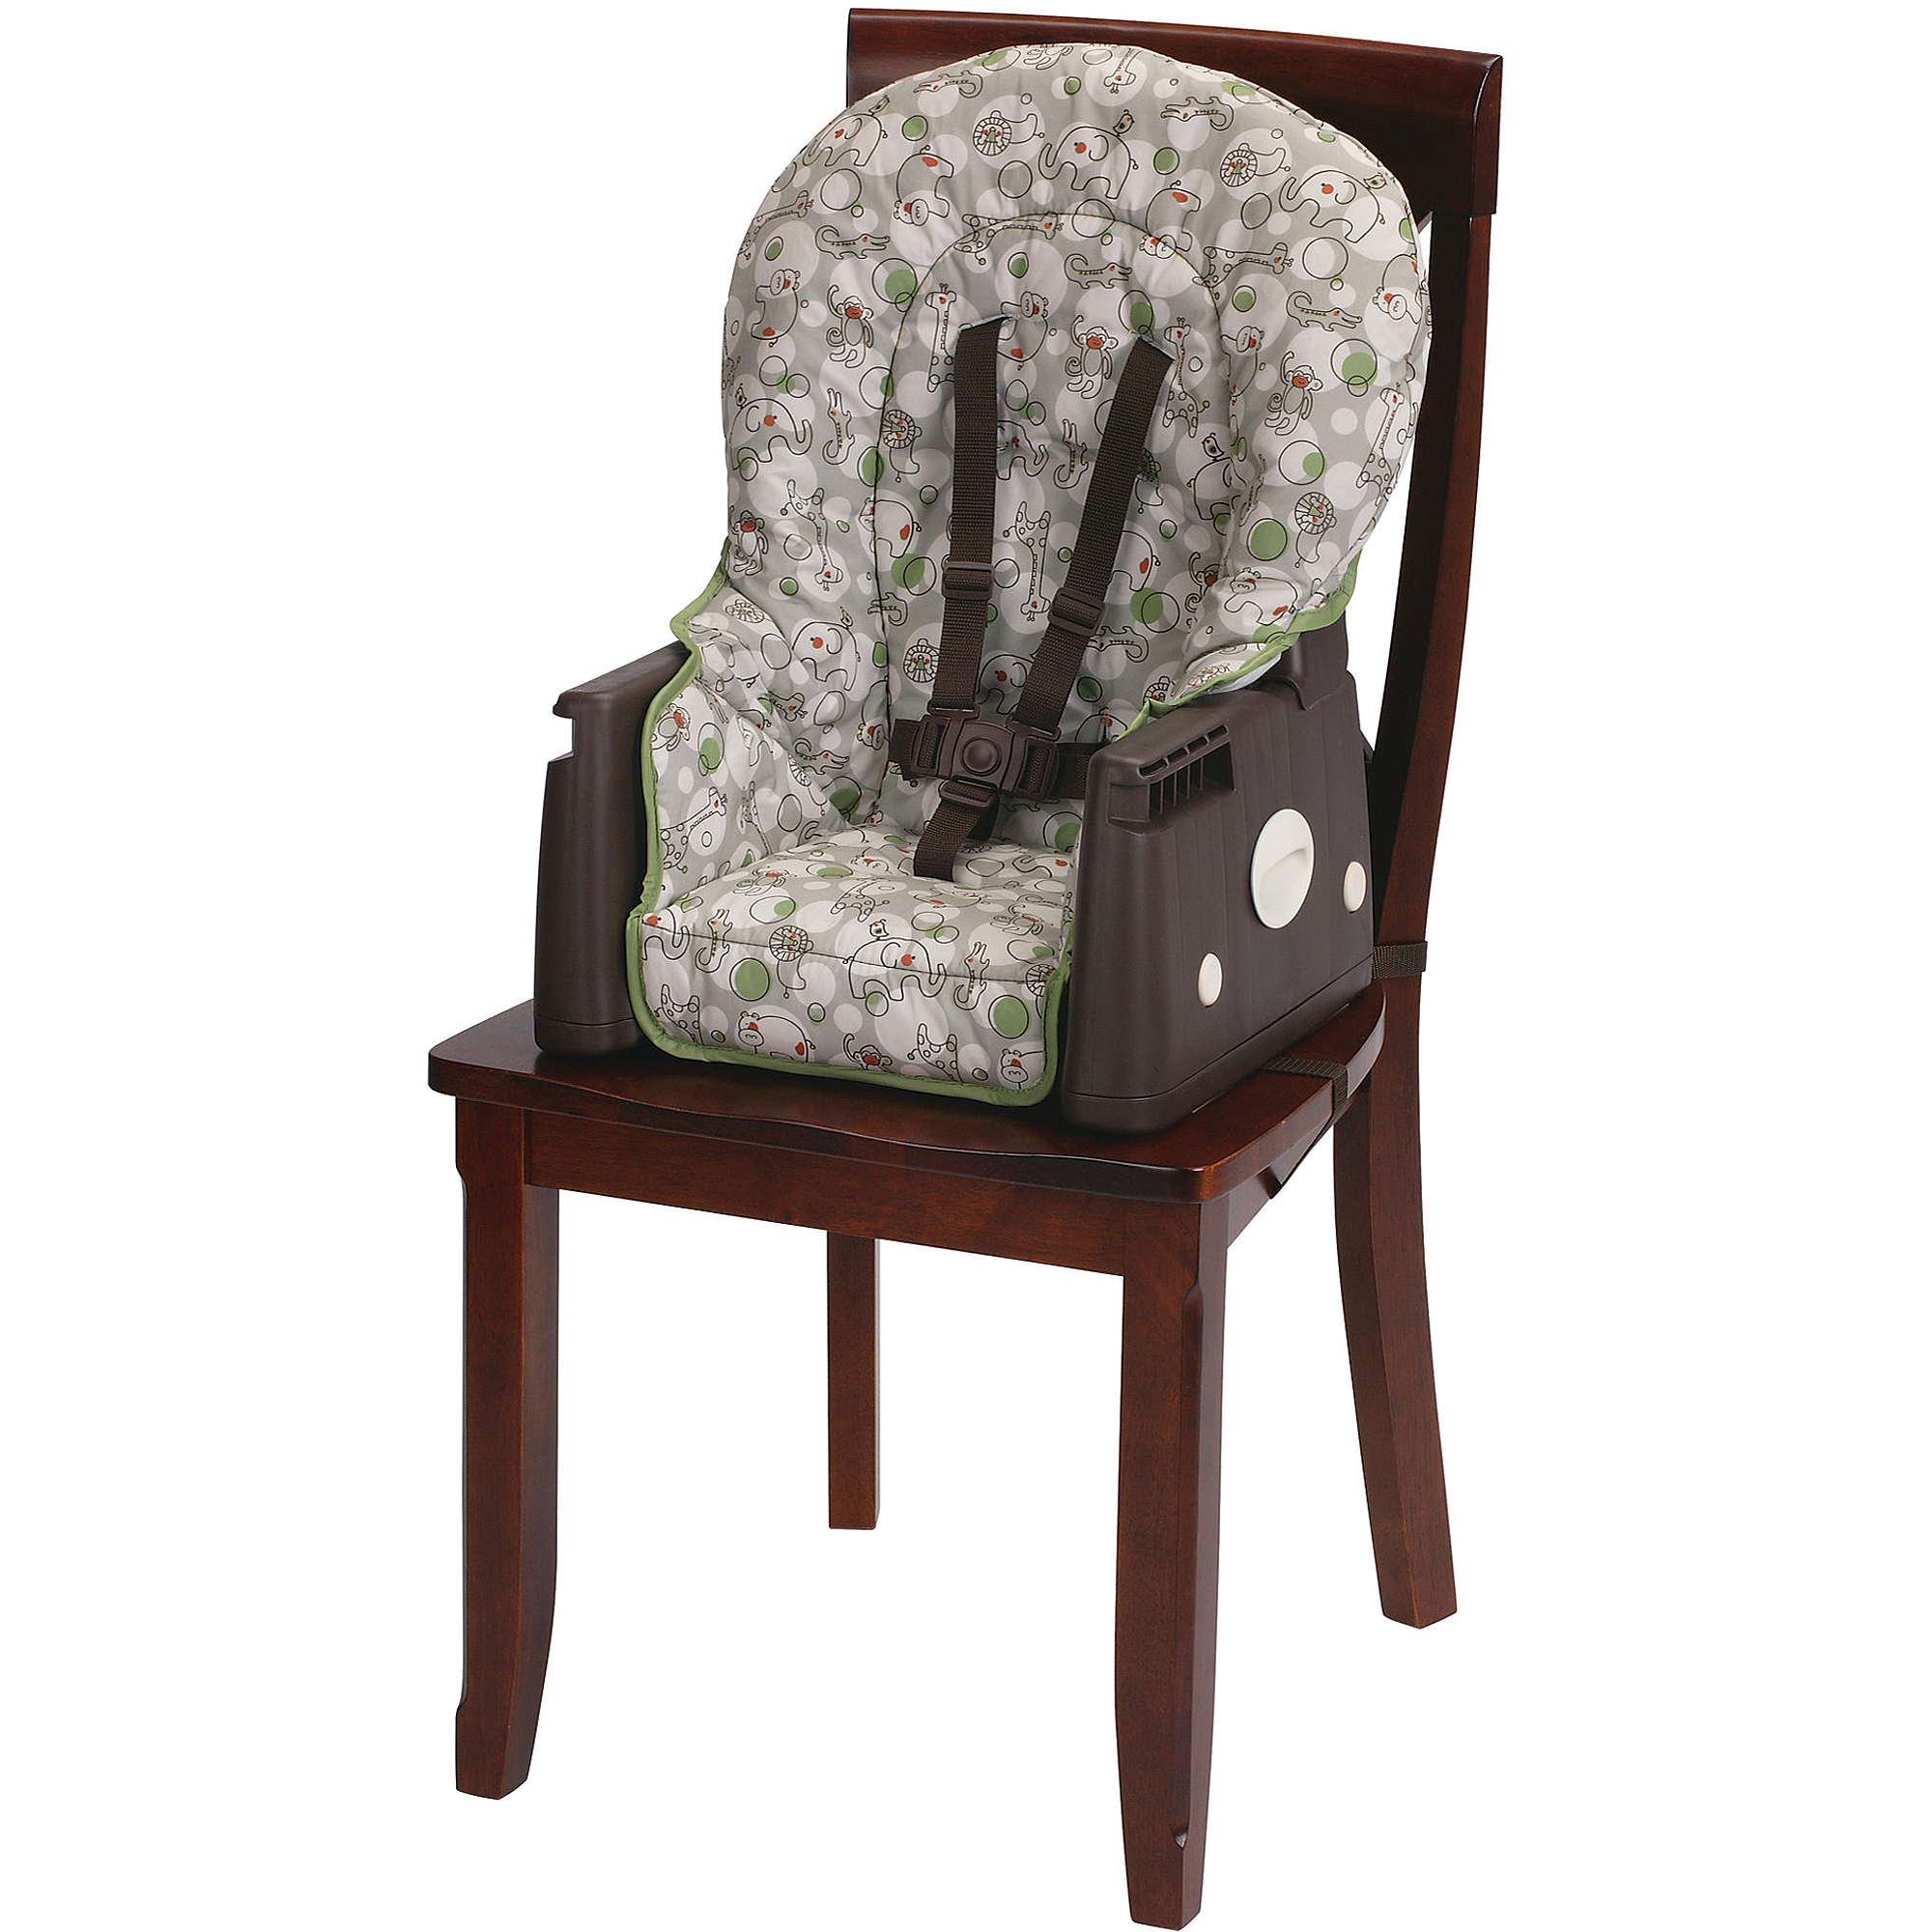 target high chair graco woven outdoor simpleswitch 2 in 1 zuba